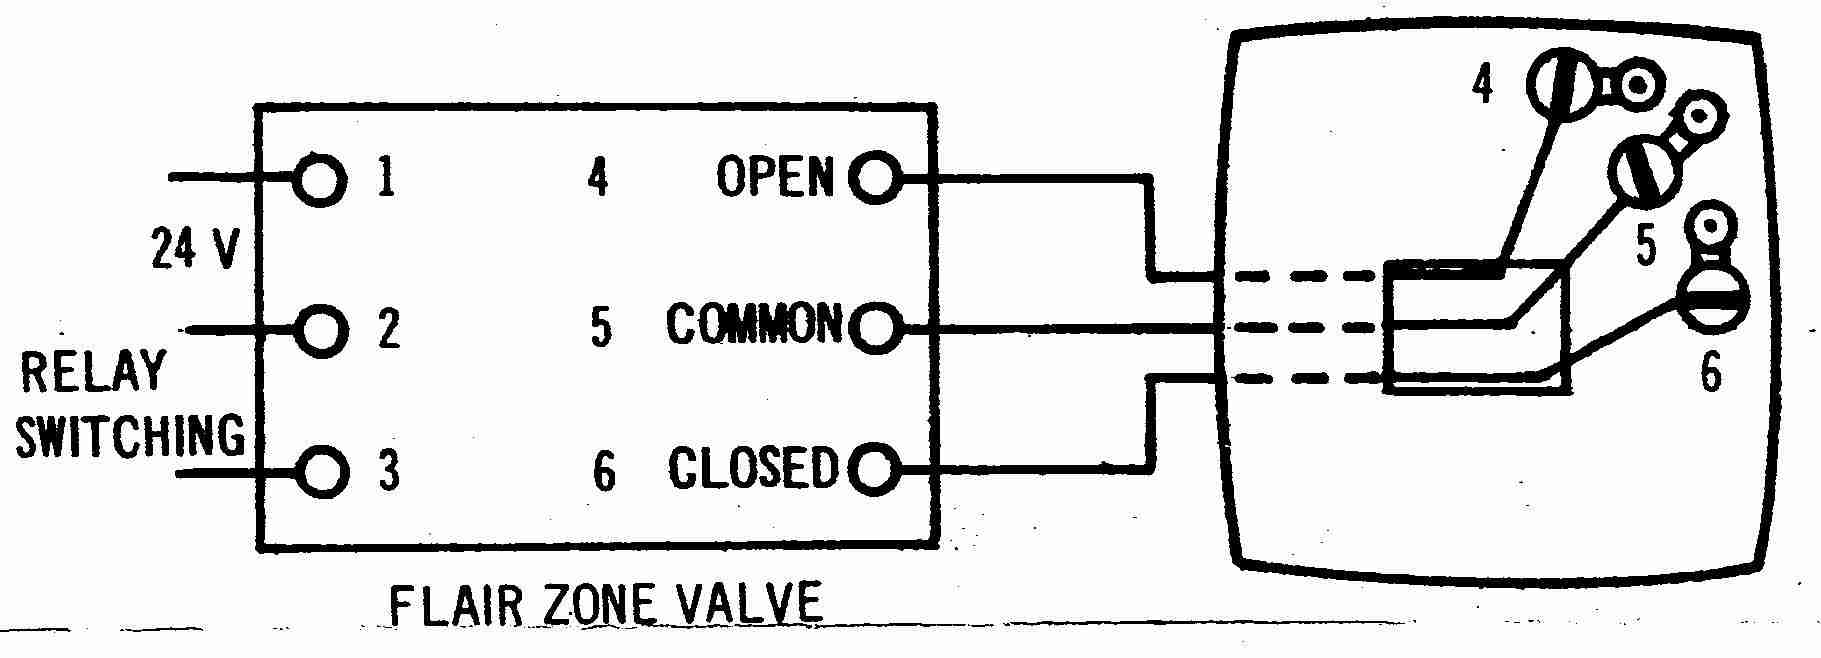 Zone Valve Wiring Installation Instructions Guide To Heating Relay Schematic Flair 3 Wire Thermostat Controlling A